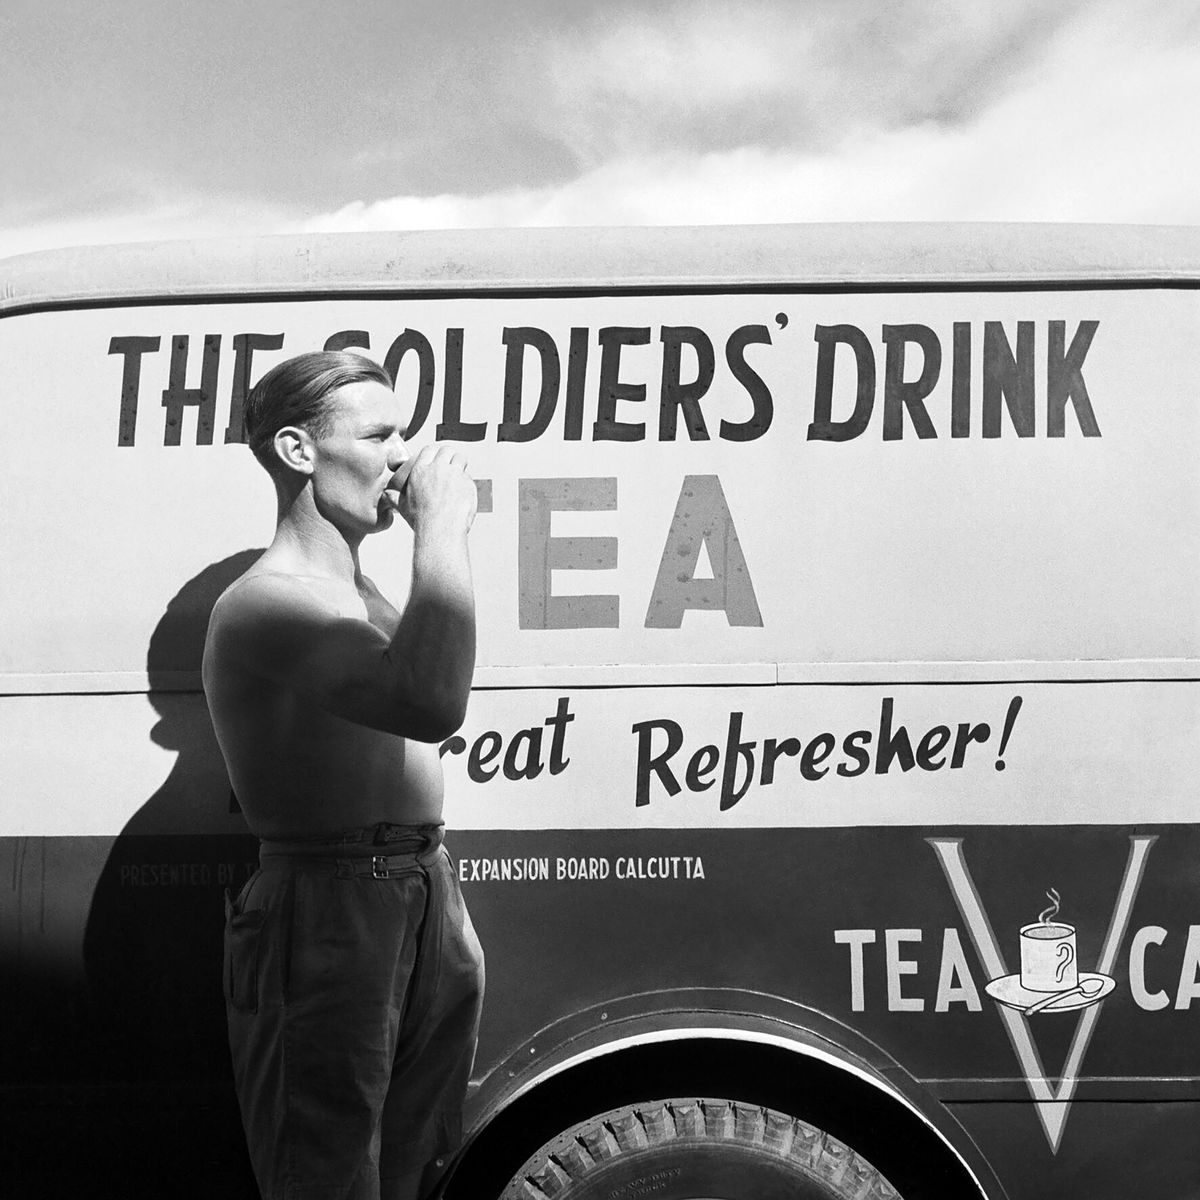 A Soldier Drinking Tea